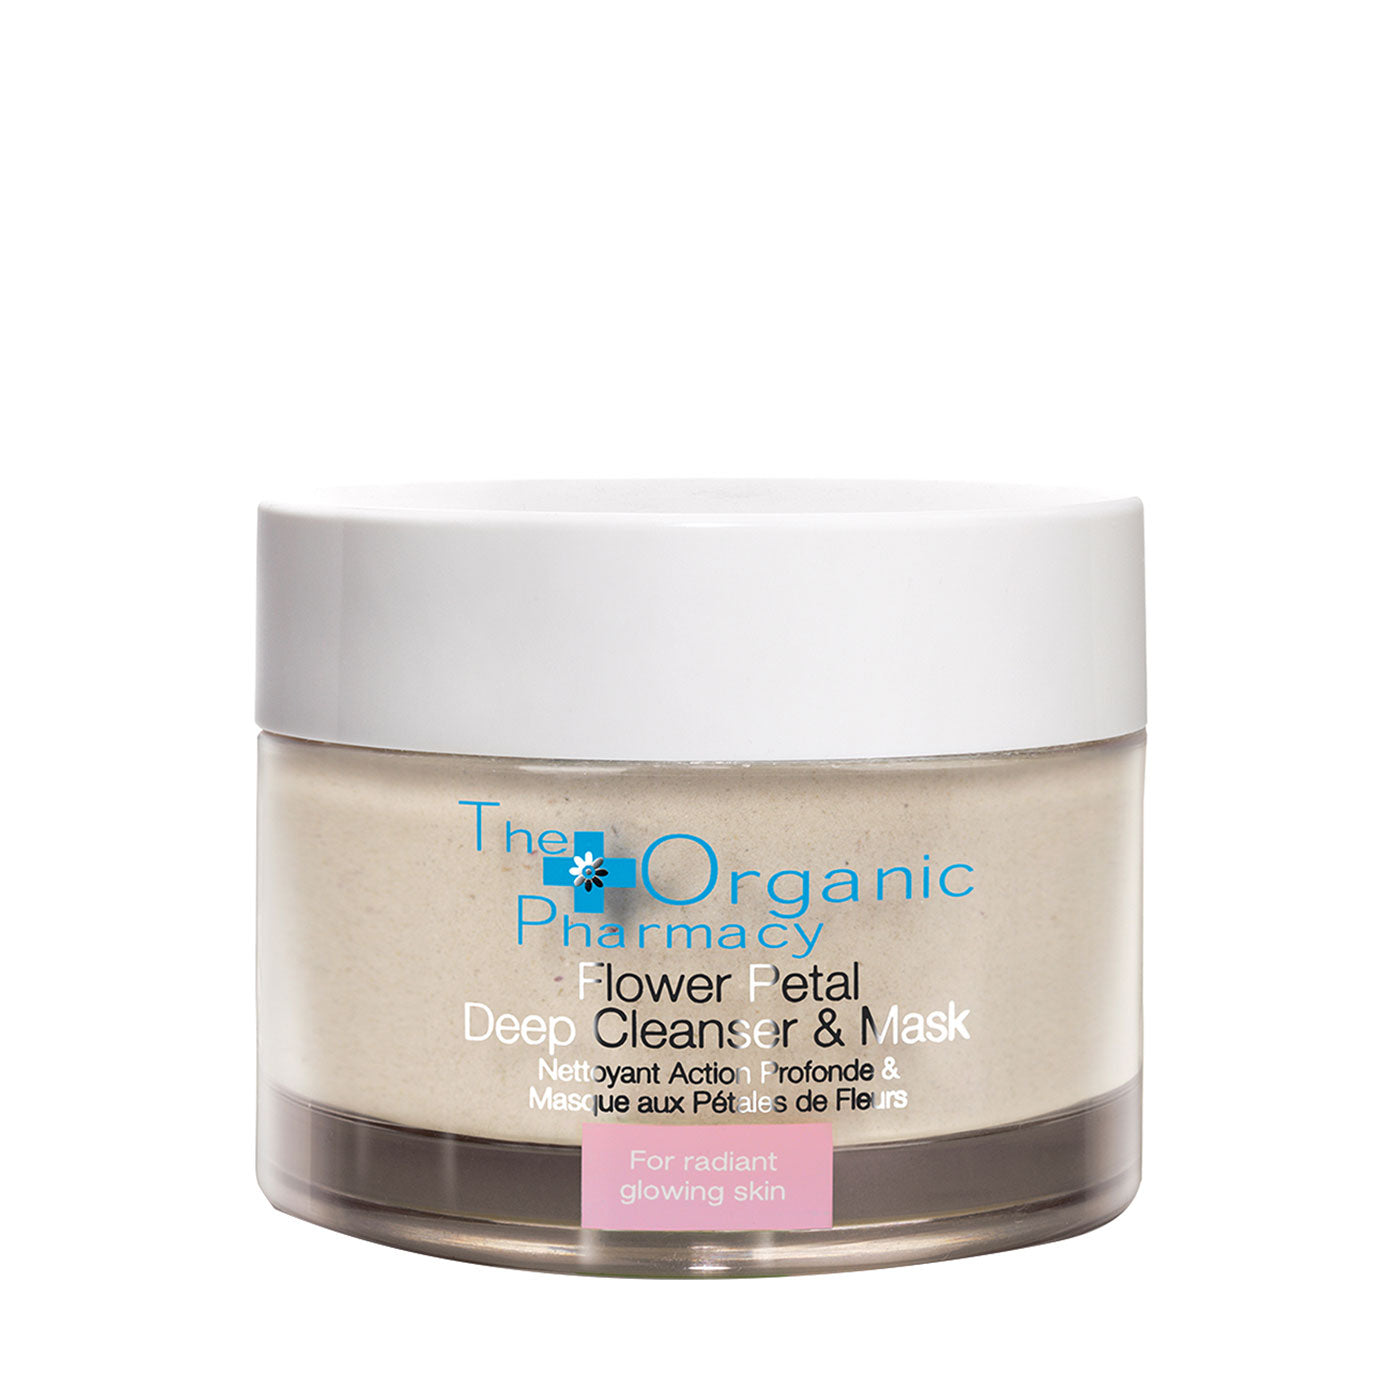 The Organic Pharmacy Flower Petal Deep Cleanser & Mask